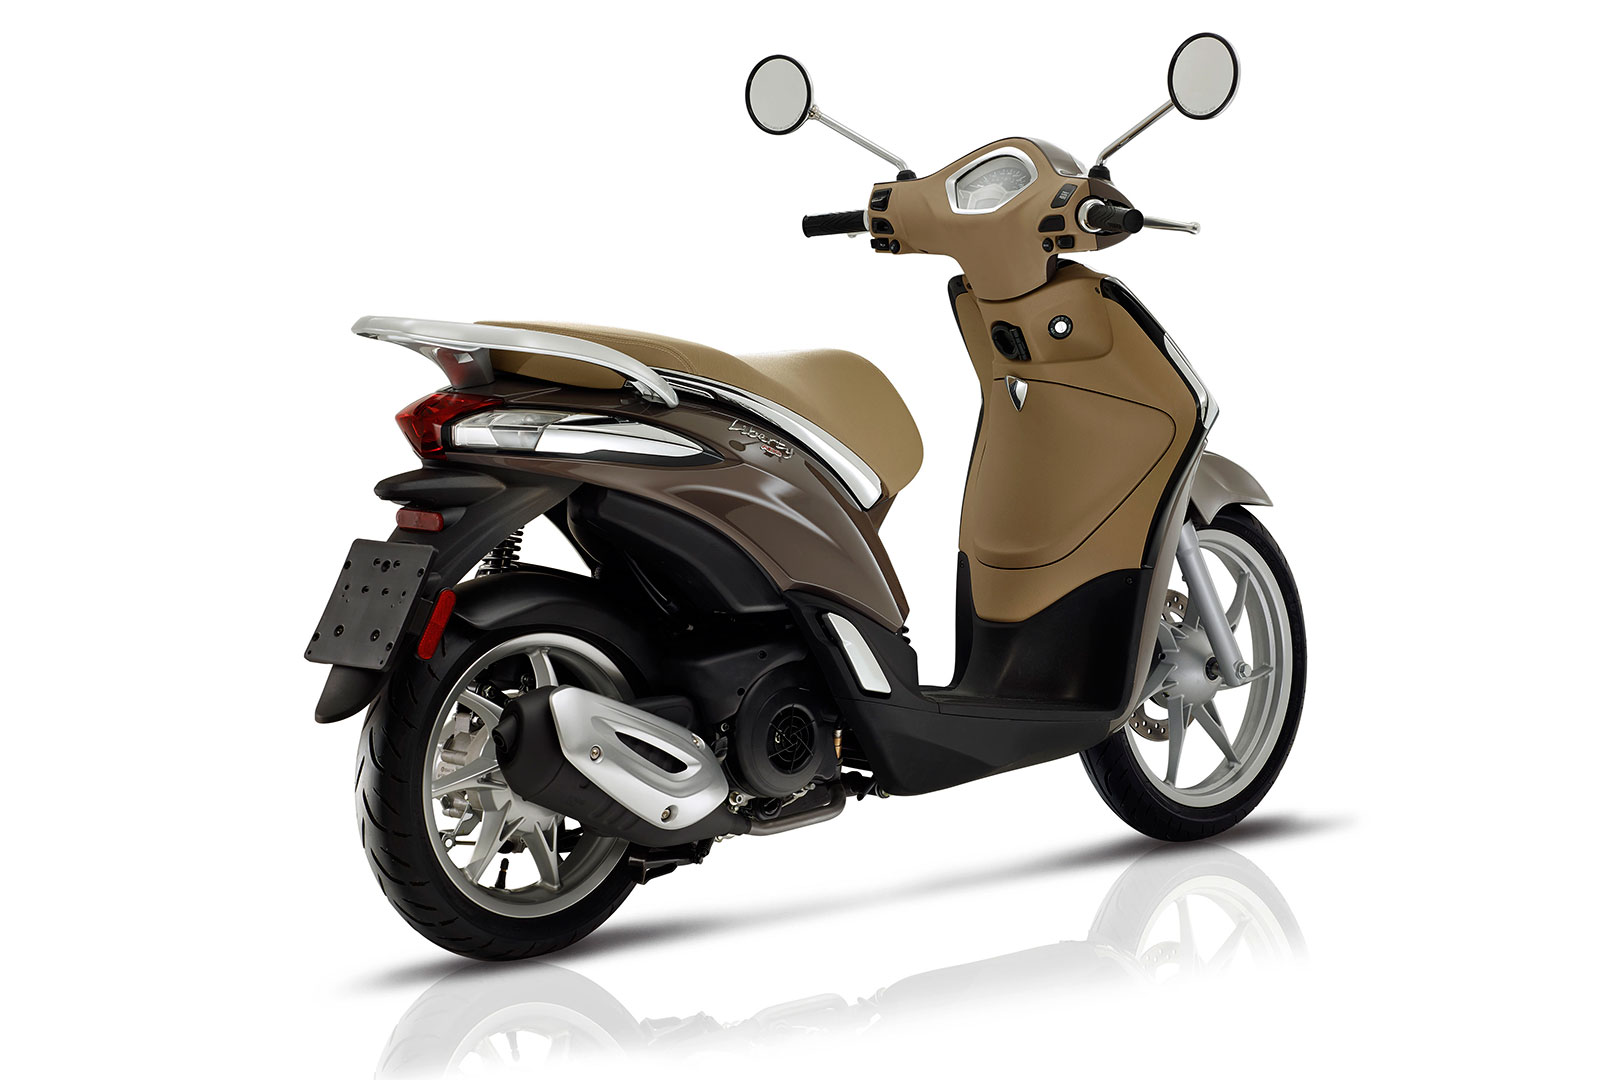 Achat Piaggio Liberty ABS 125 cm3 neuf à Nice chez Scoot Center-3